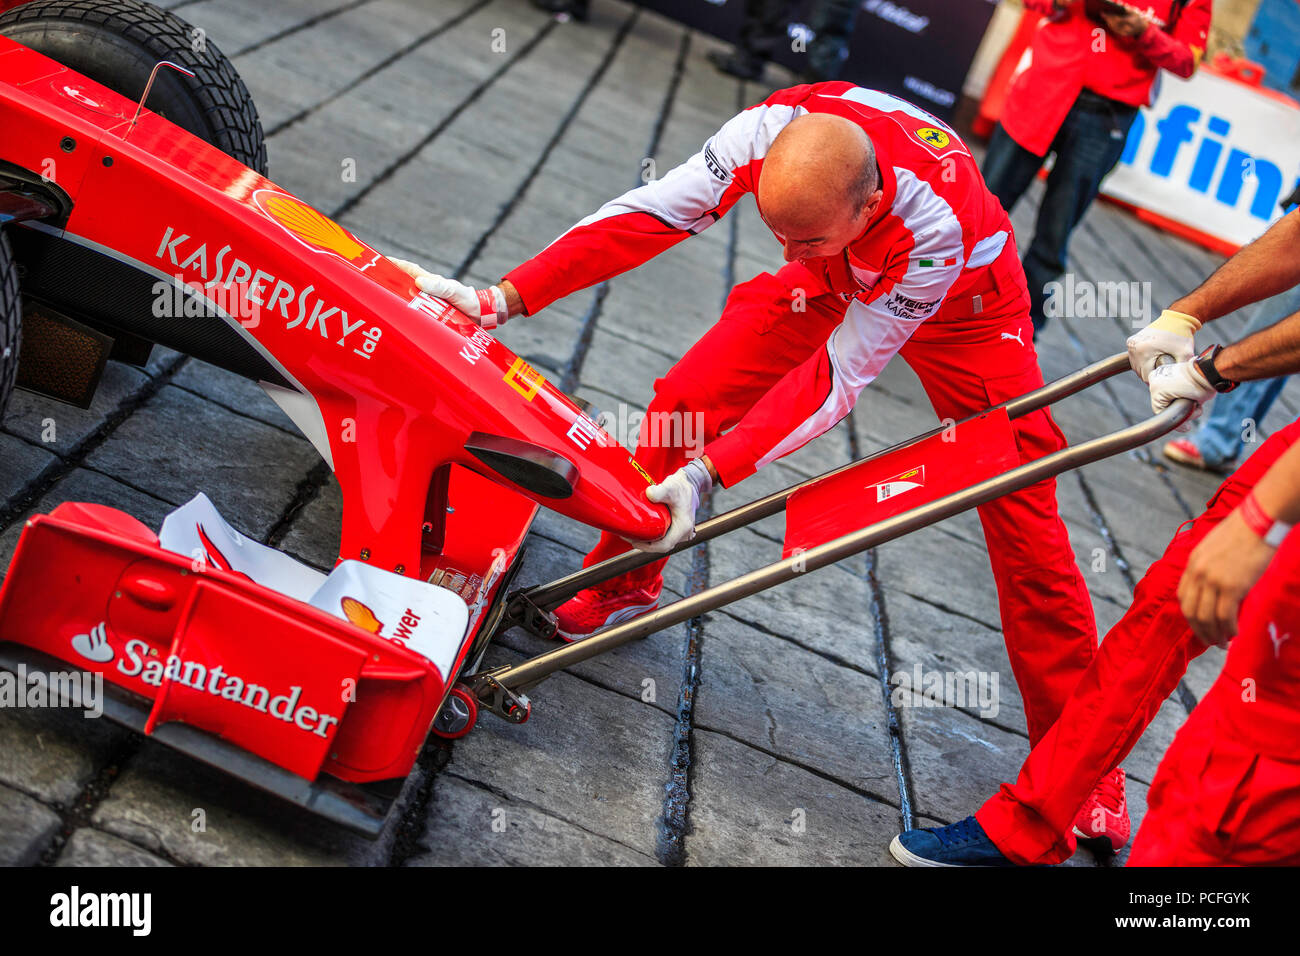 Mexico City, Mexico - July 08, 2015: Front Jack Man testing the